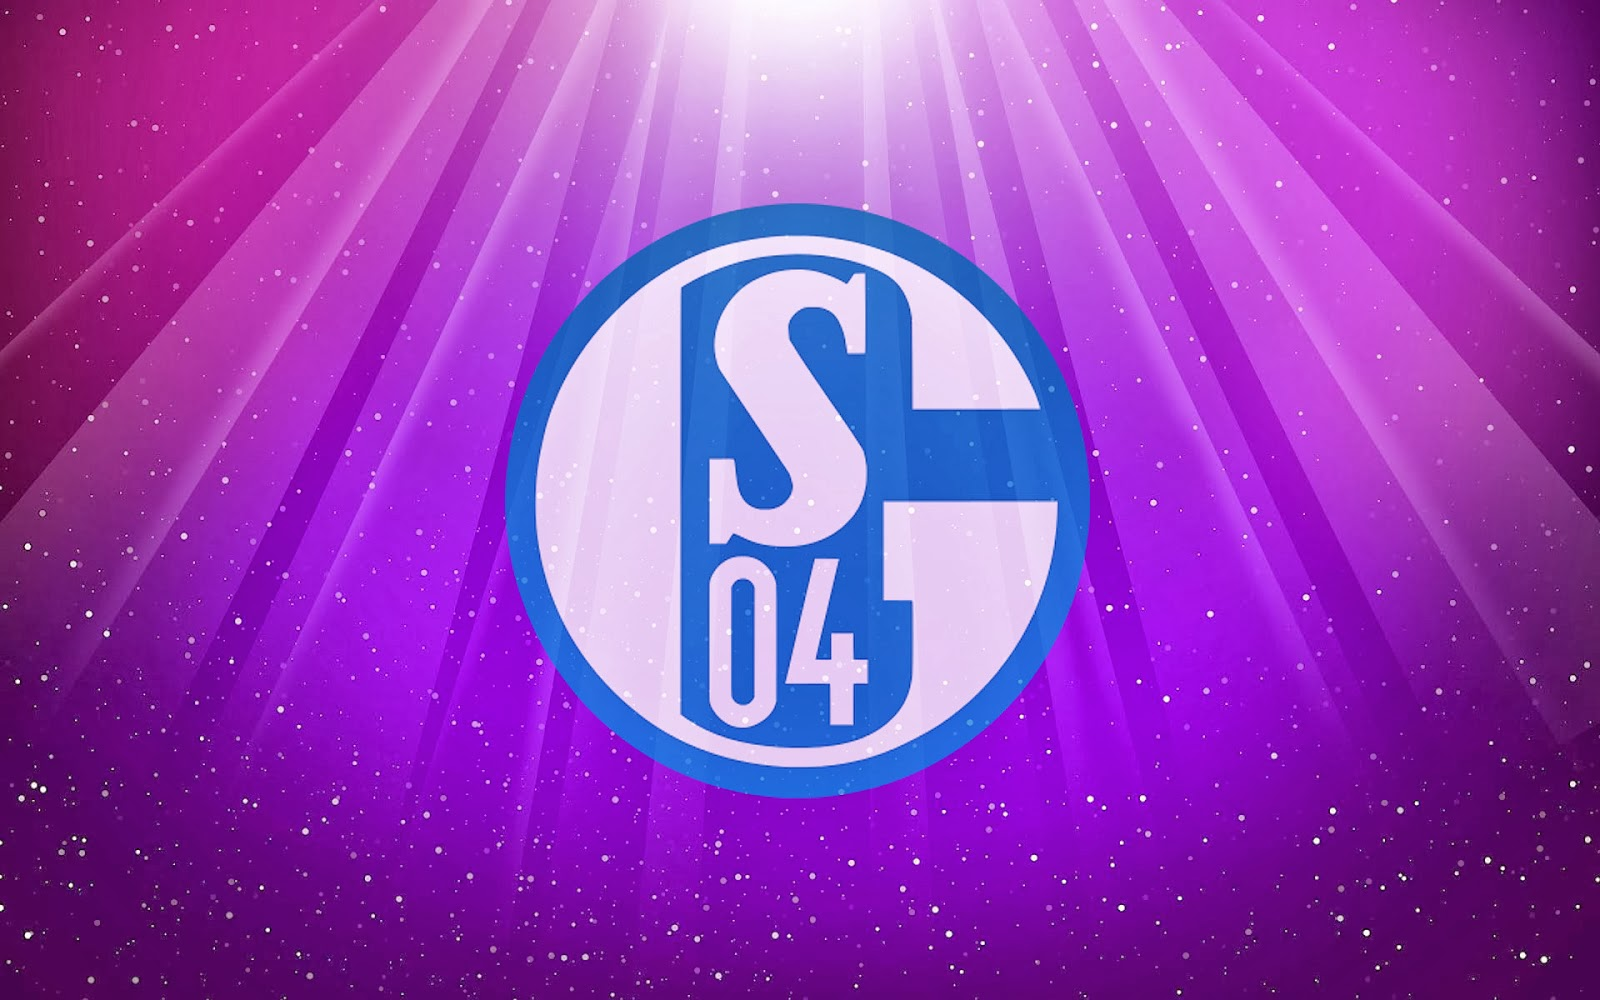 Bilder lila Schalke 04 wallpaper mit Schalke 04 logo in HD